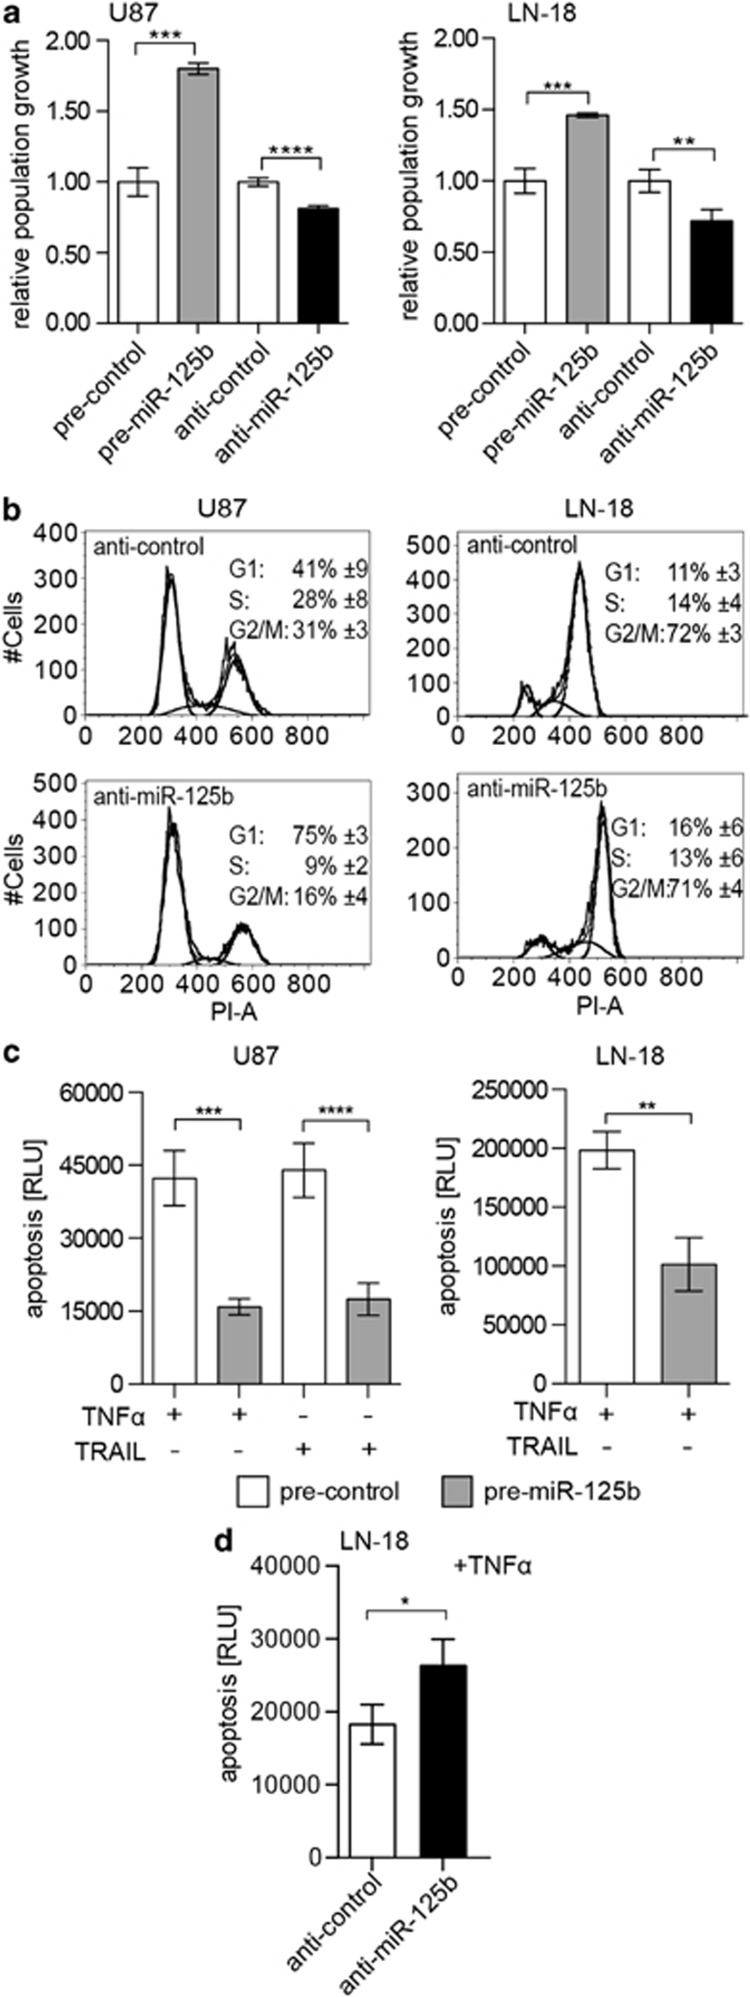 miR-125b induces proliferation and apoptosis resistance in GBM cells. ( a ) Population growth of U87 and LN-18 cells overexpressing miR-125b or anti-miR-125b relative to the control using the resazurin assay ( n =3). ( b ) Cell cycle analysis of nocodazole-treated cells by flow cytometry ( n =3). ( c ) Apoptosis. Cells were transfected with pre-miR-125b or pre-control and treated with 10 ng/ml TNF α or 250 ng/ml TRAIL for 48 h beginning 24 h post <t>transfection.</t> Apoptosis was assessed using the ApoTox-Glo Triplex assay ( n =3) ( d ) LN-18 cells overexpressing anti-miR-125b or anti-control were induced with 10 ng/ml TNF α for 24 h and subjected to the ApoTox-Glo Triplex assay ( n =3)